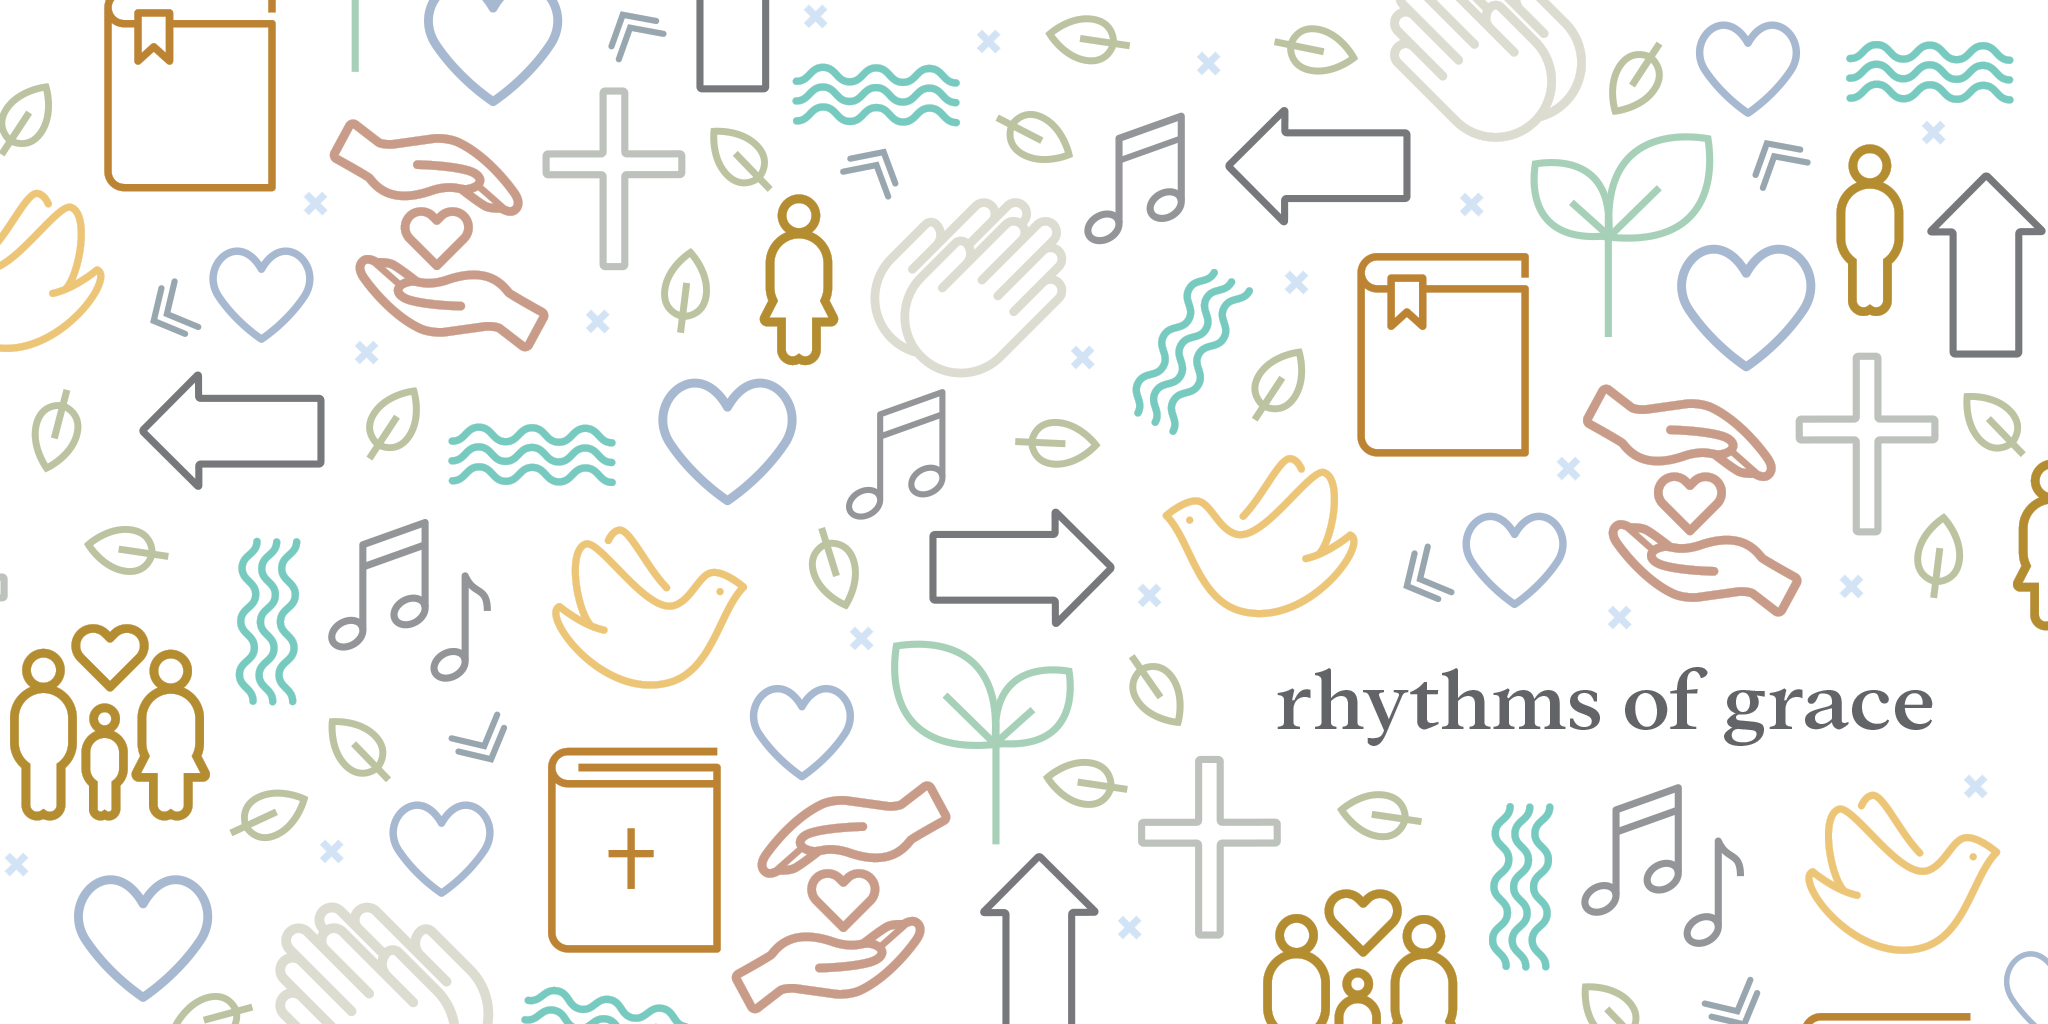 rhythms of grace graphic